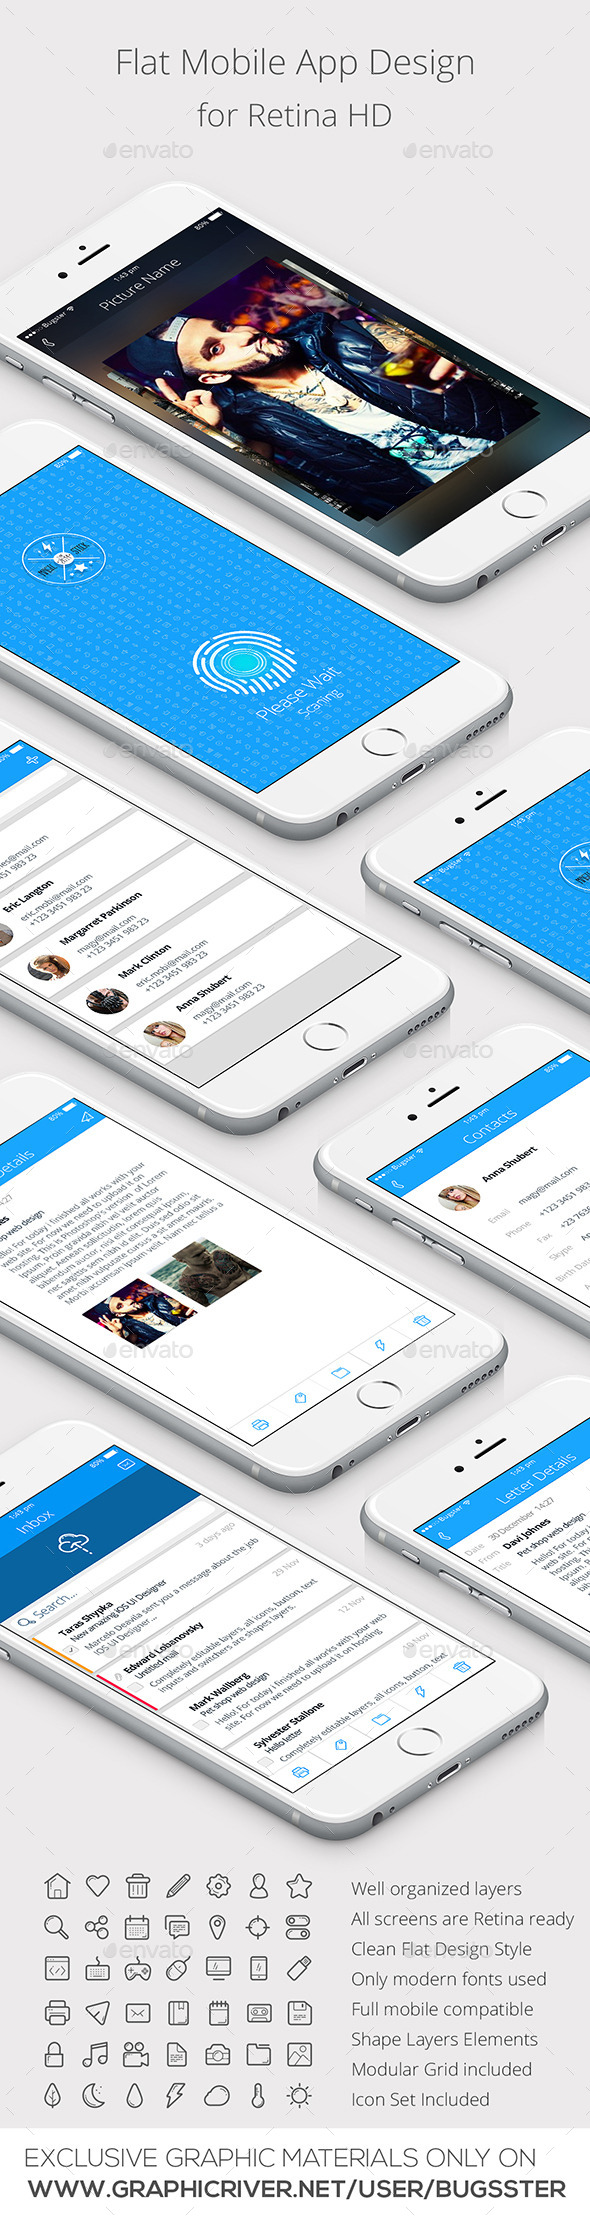 App Design for Smartphones